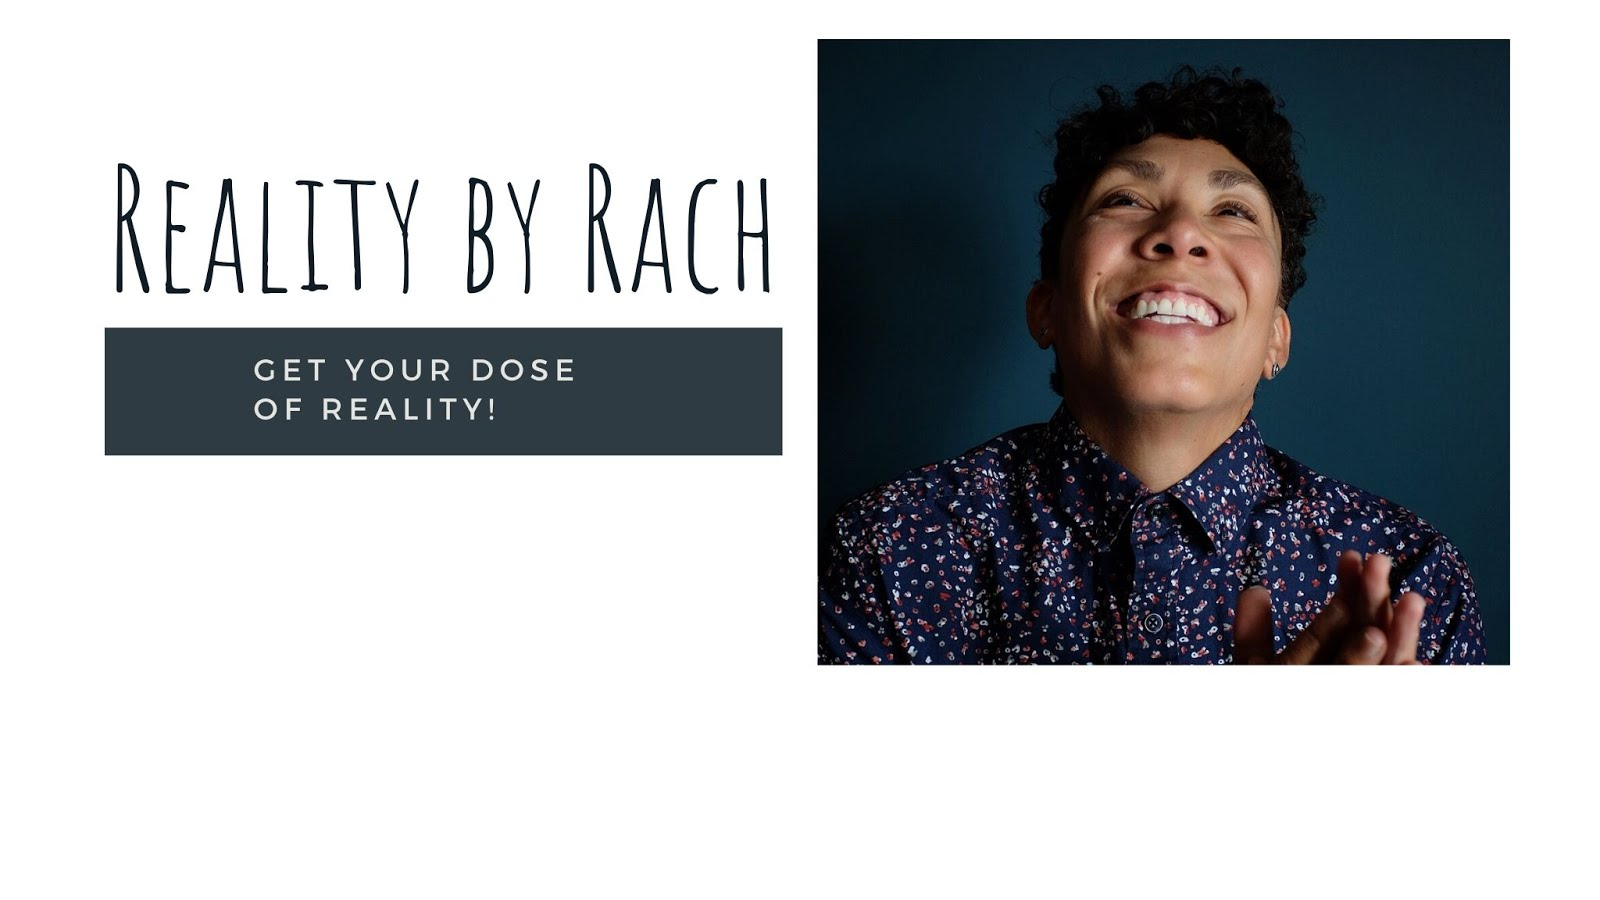 Reality by Rach